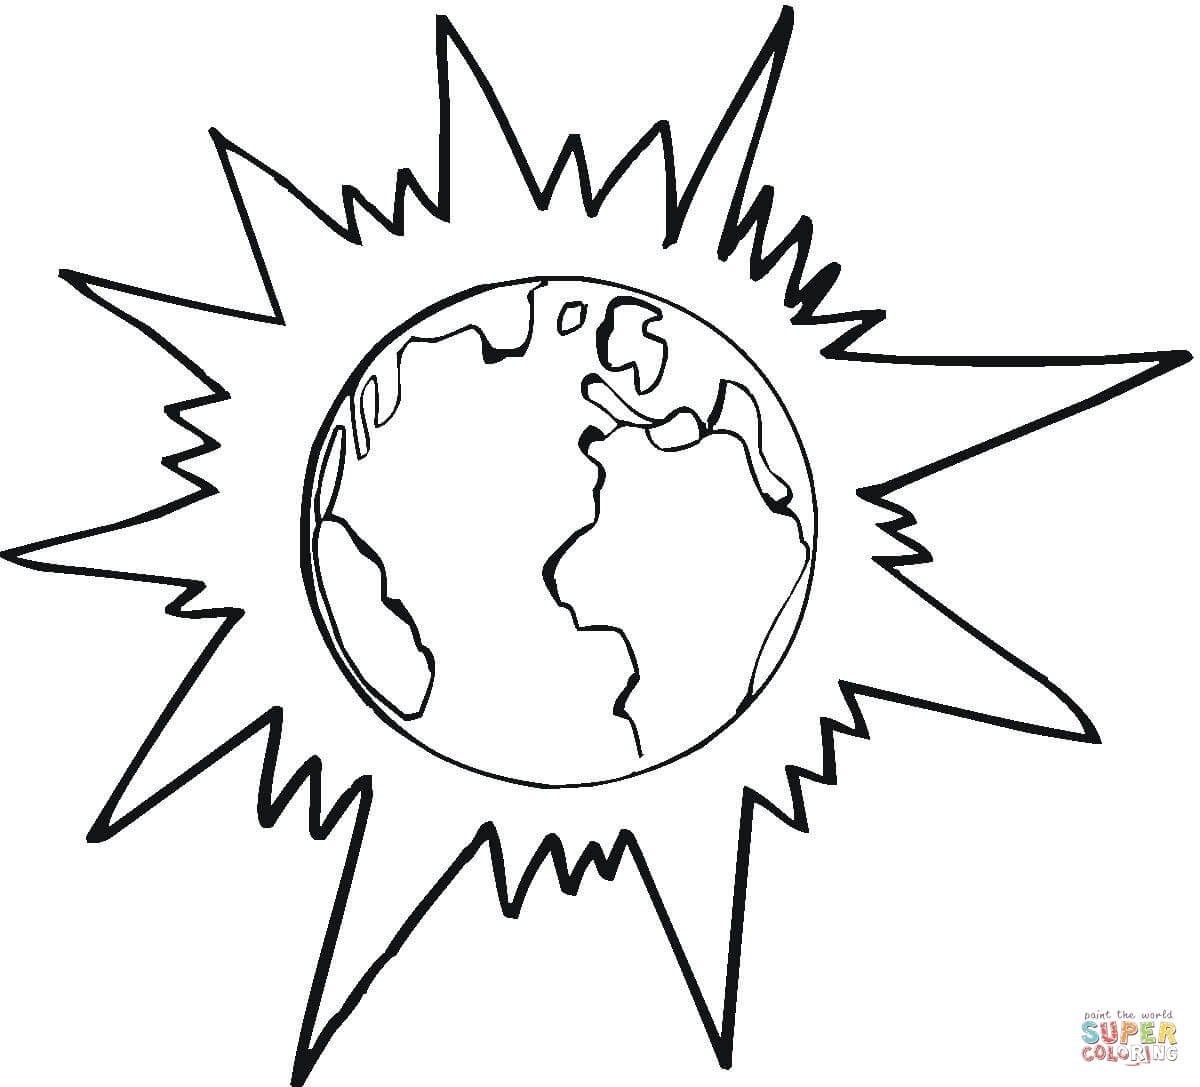 1200x1087 Earth, Moon And Sun Coloring Page Free Printable Coloring Pages